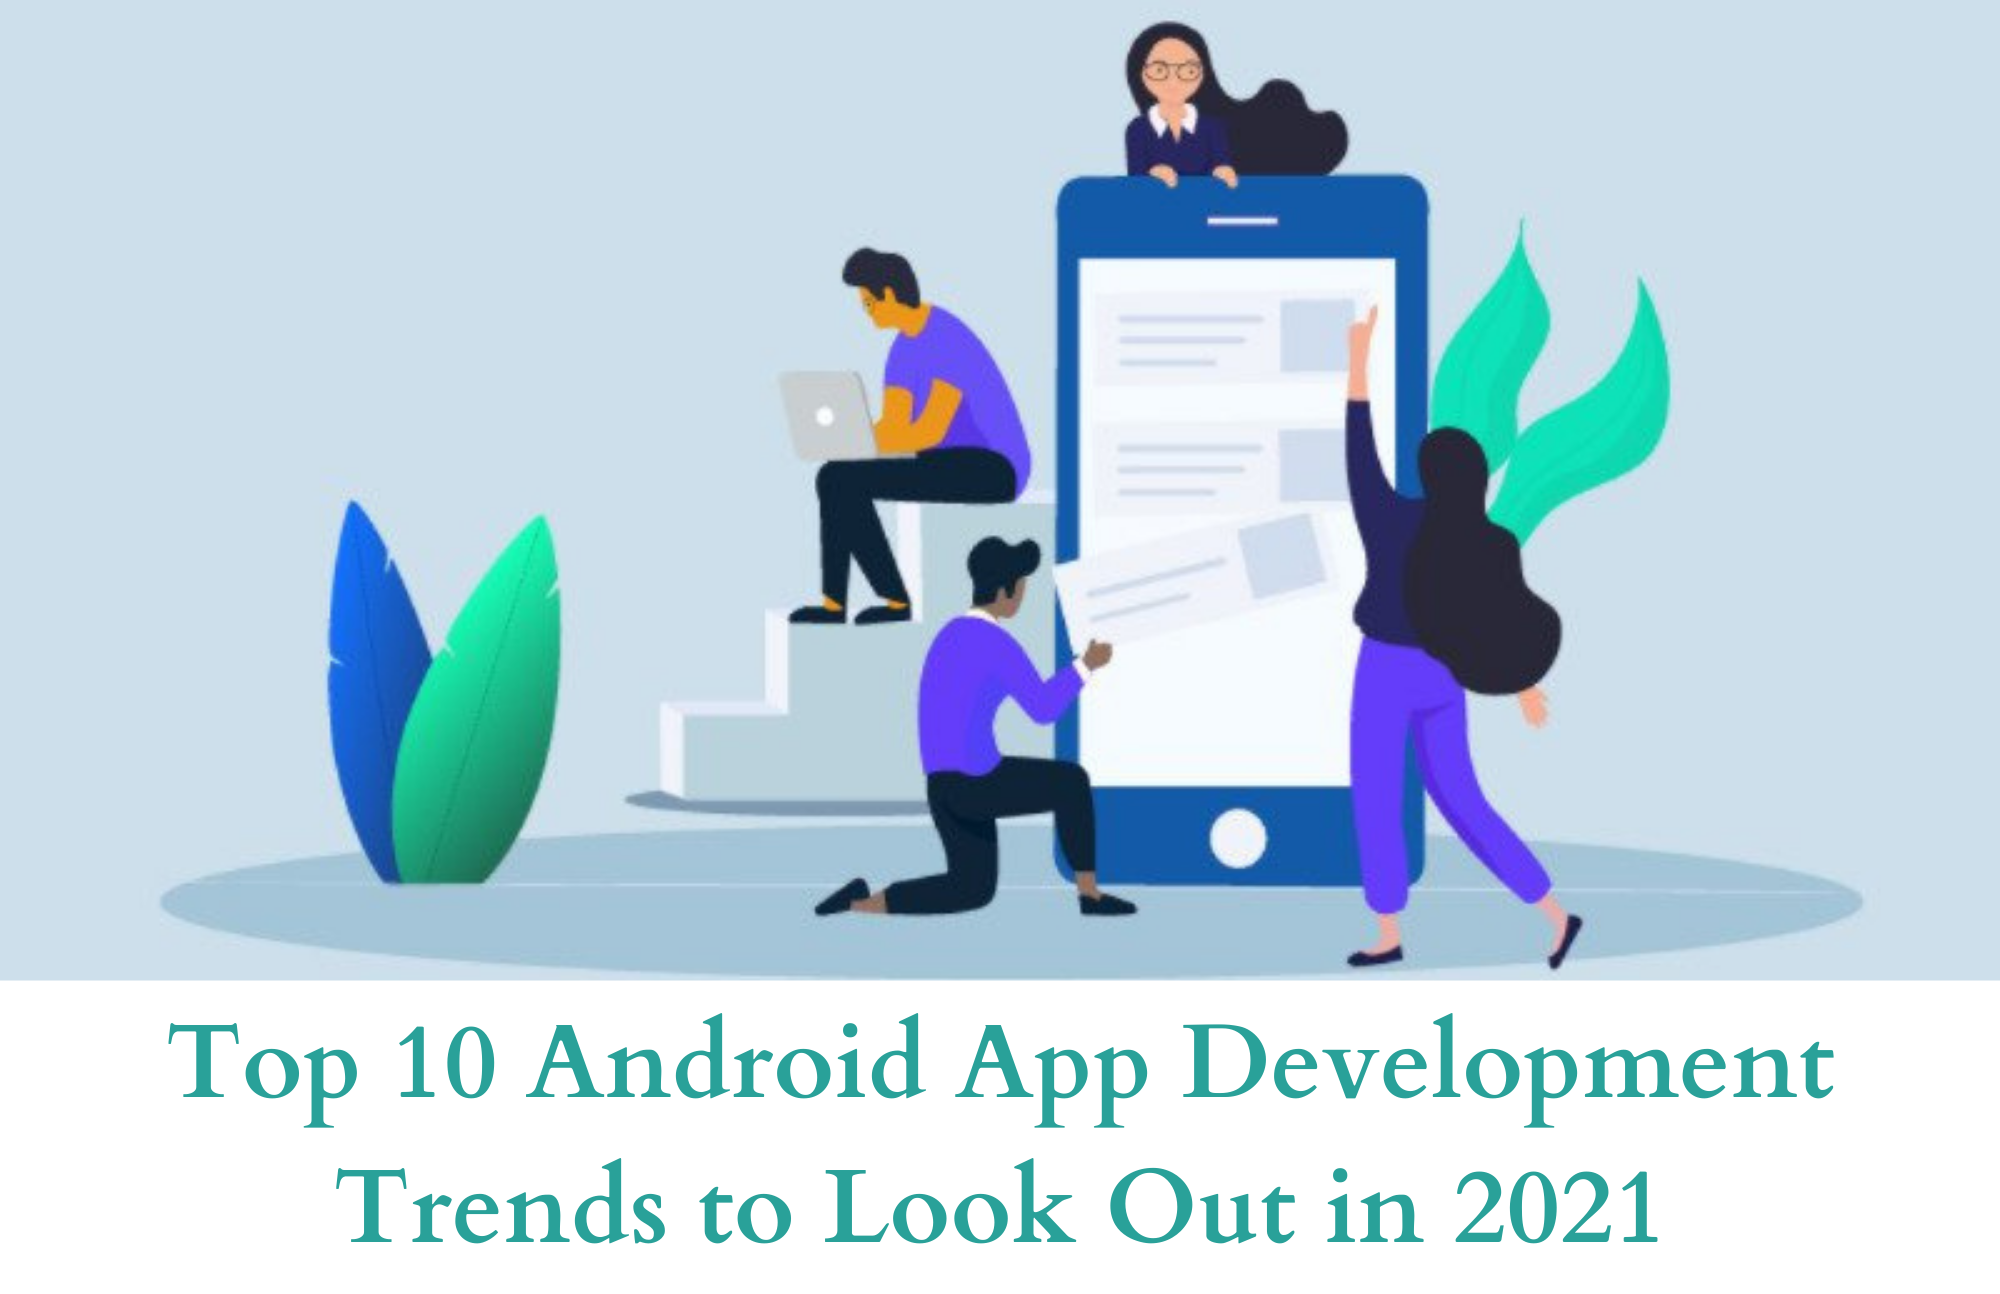 Top 10 Android App Development Trends to Look Out in2021